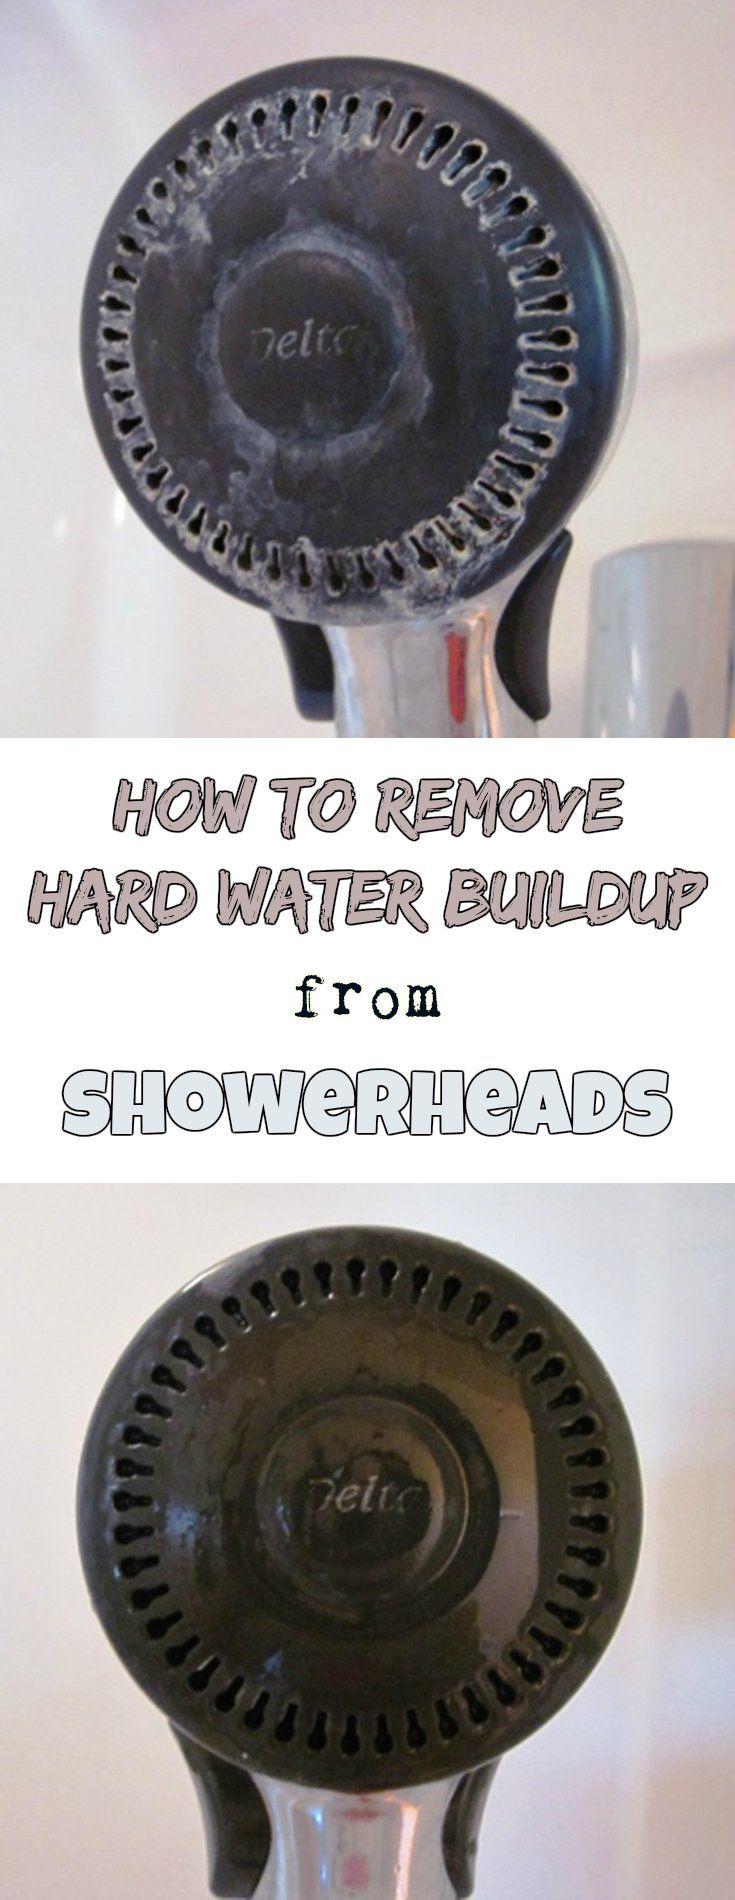 how to clean hard water buildup in dishwasher